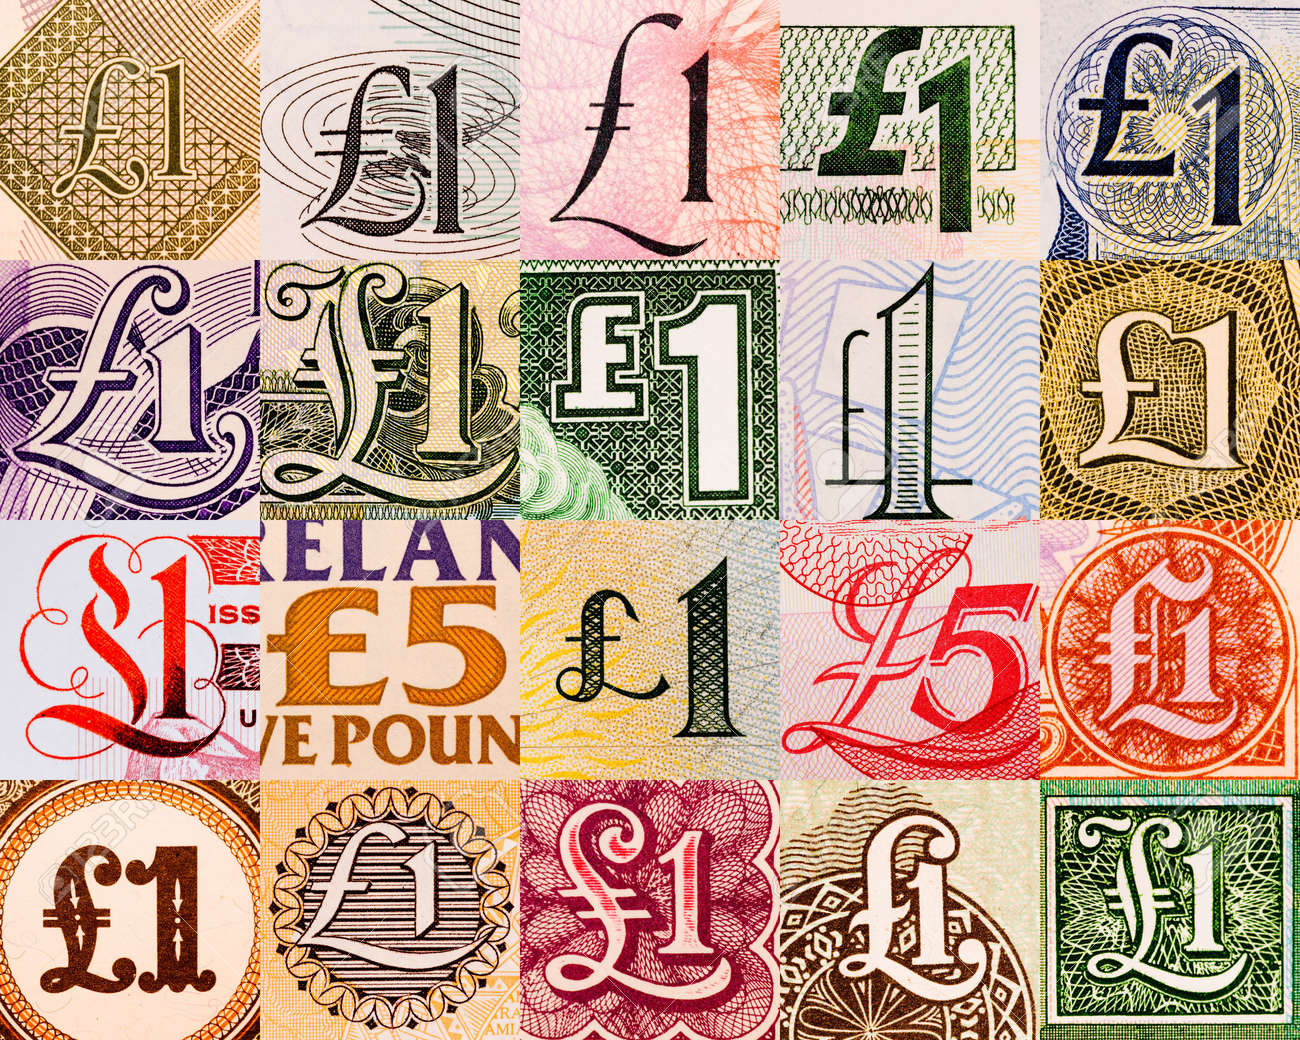 World currency symbols pictures metacity gnome themes wallpapers world currency symbols pictures hostel life wallpaper themes buycottarizona Image collections